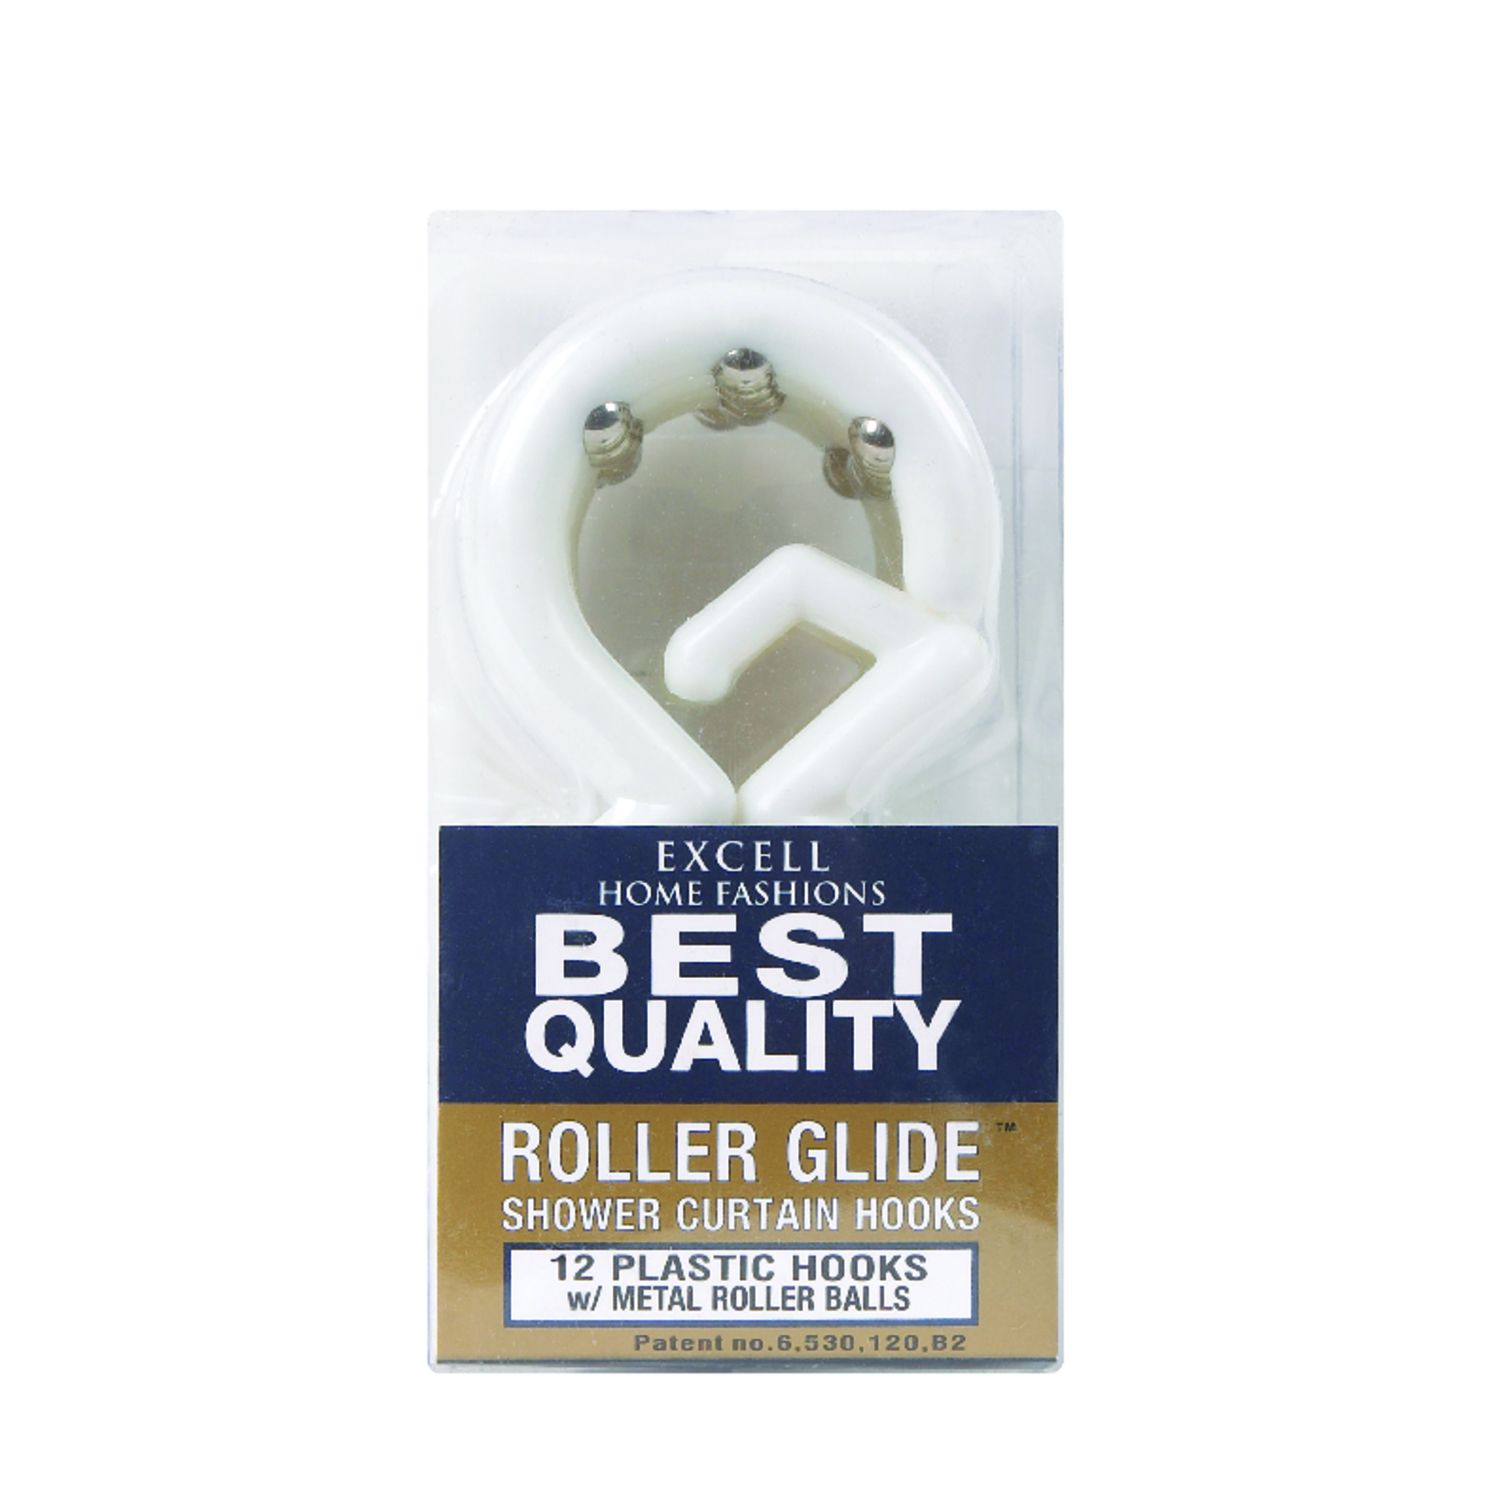 Excell White White Plastic Roller Glide Shower Curtain Rings